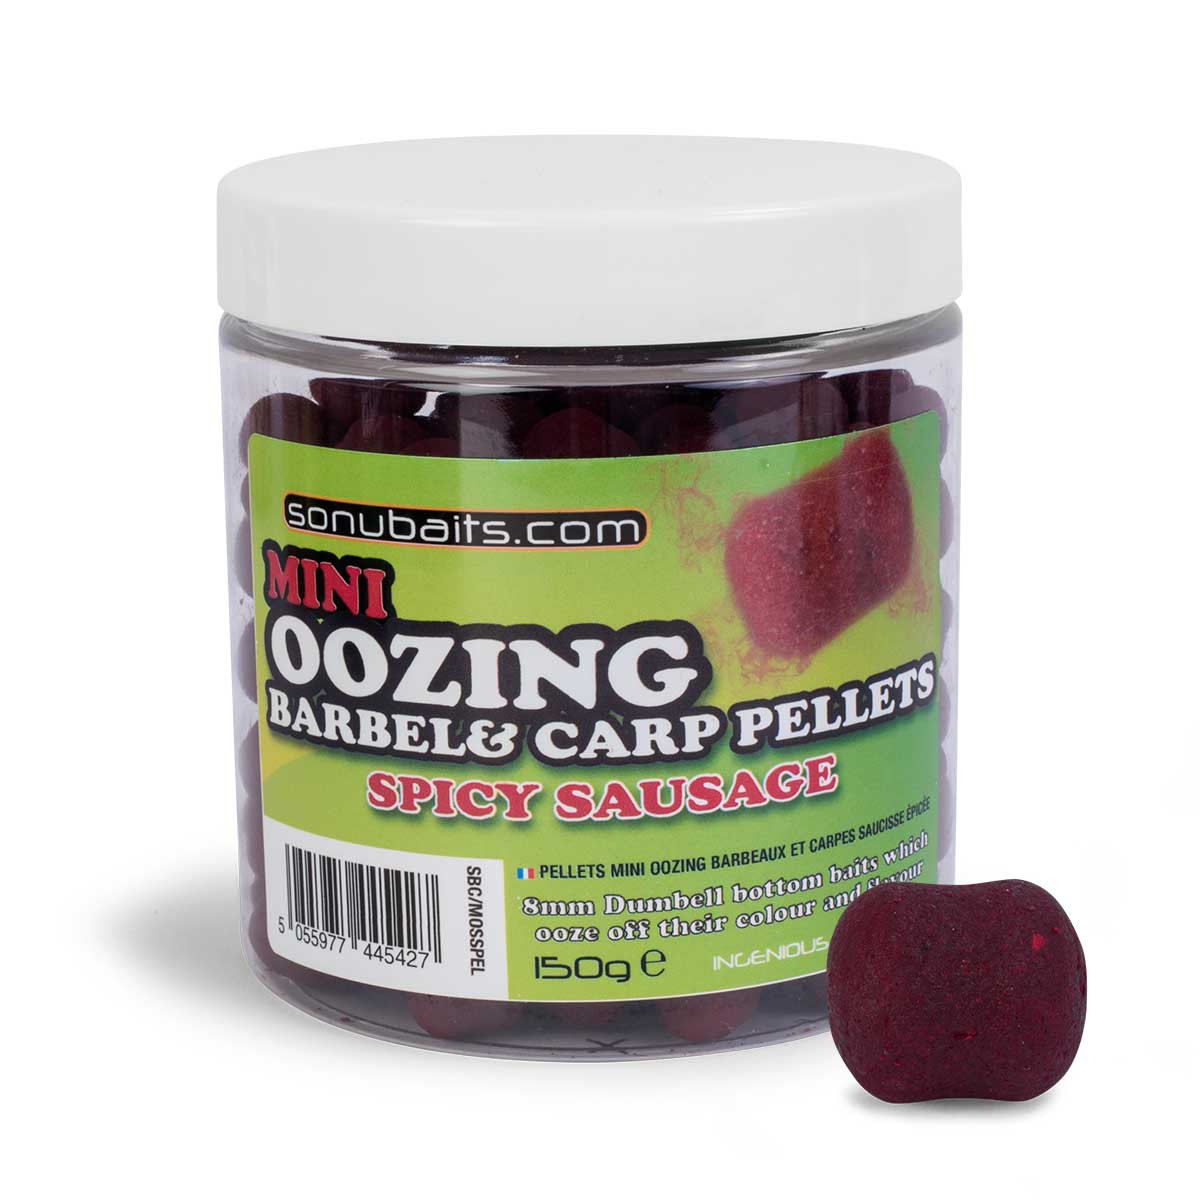 Mini Oozing Barbel  Carp Pellets - Spicy Sausage